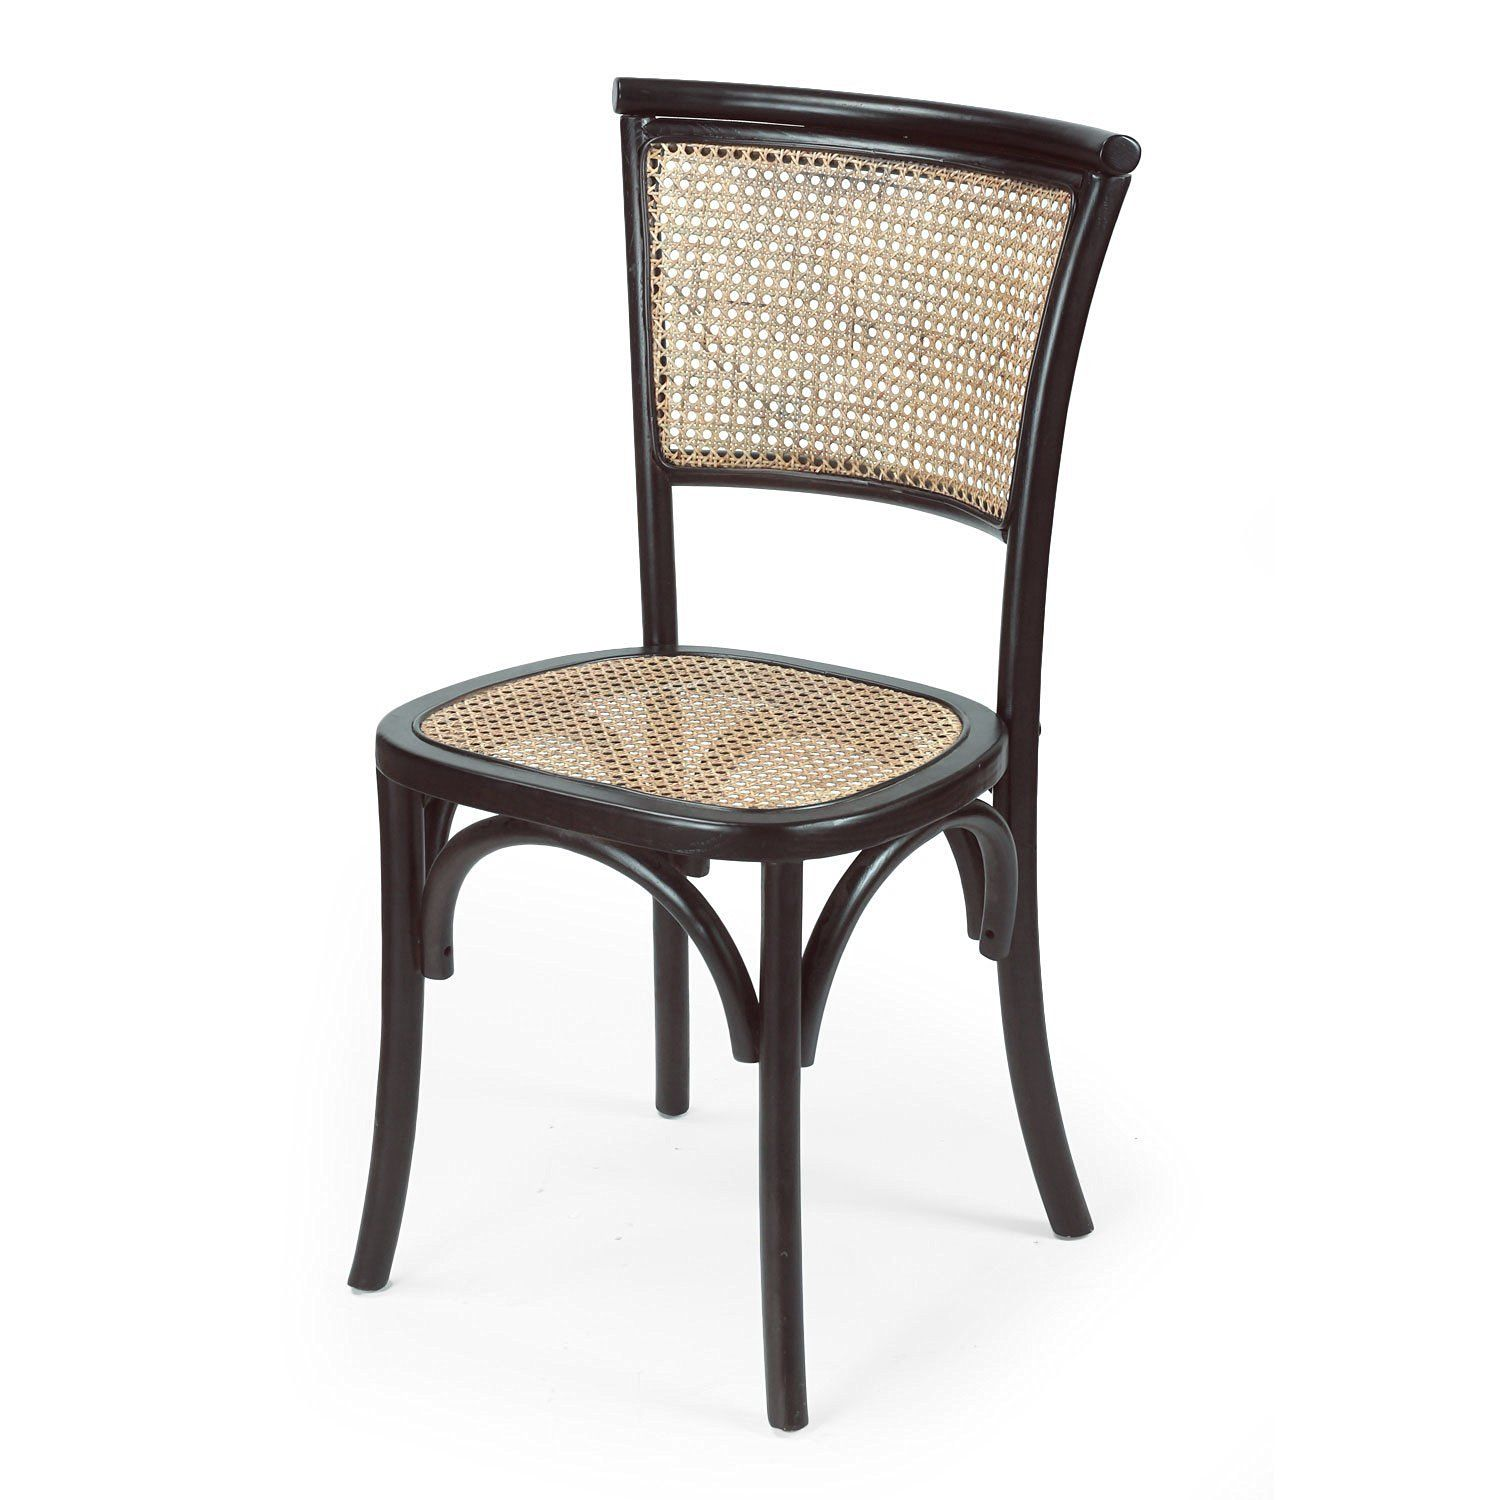 Enjoyable Antique Vintage Rattan Solid Elm Wood Dining Chair Set Of Ocoug Best Dining Table And Chair Ideas Images Ocougorg